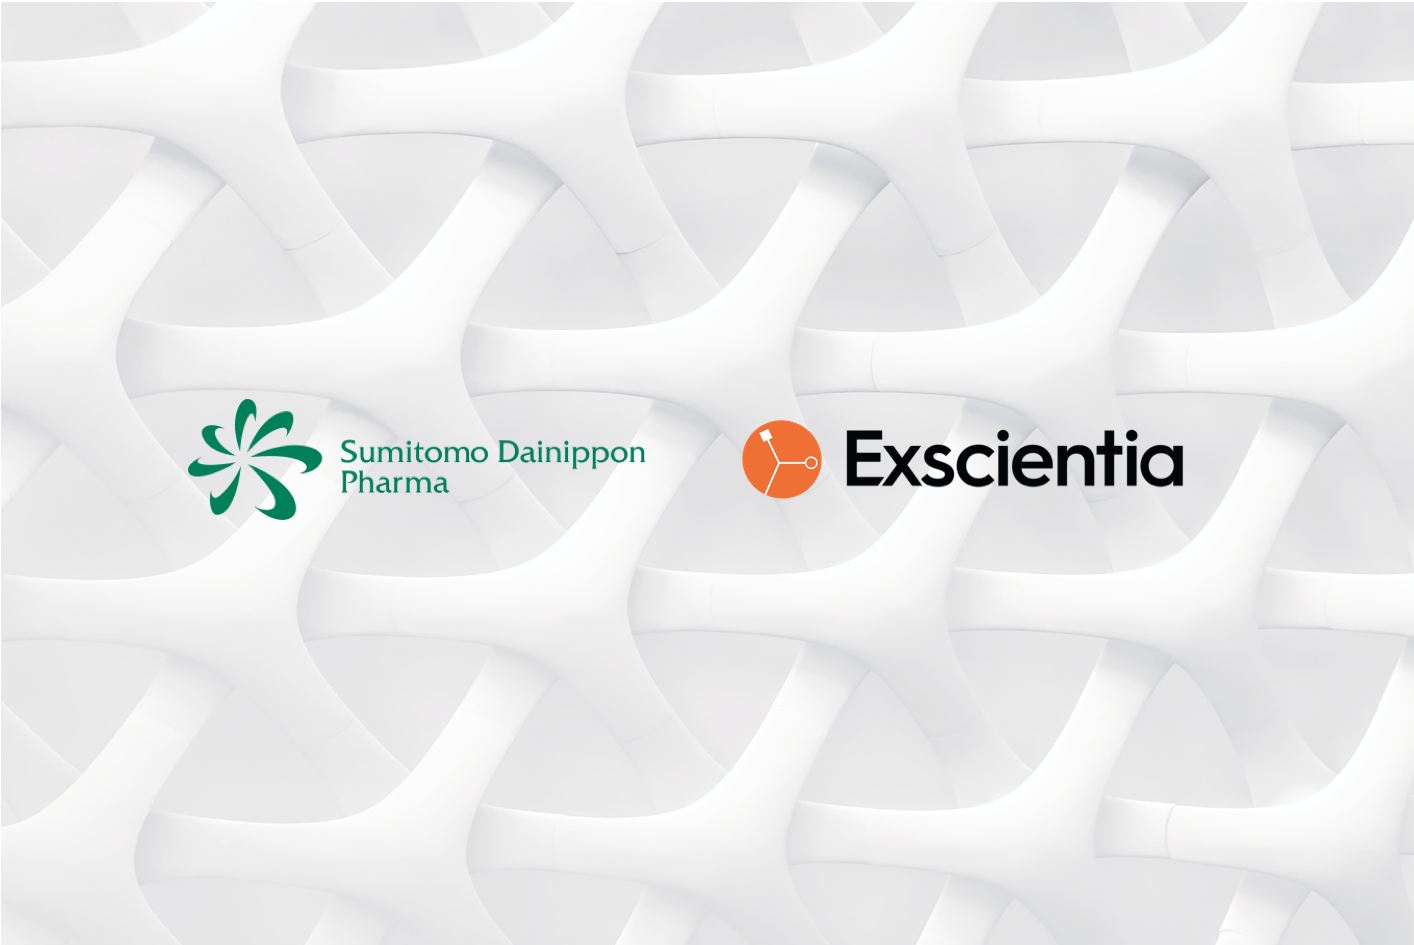 Ma Jolie Boutique Cysoing exscientia - sumitomo dainippon pharma and exscientia joint